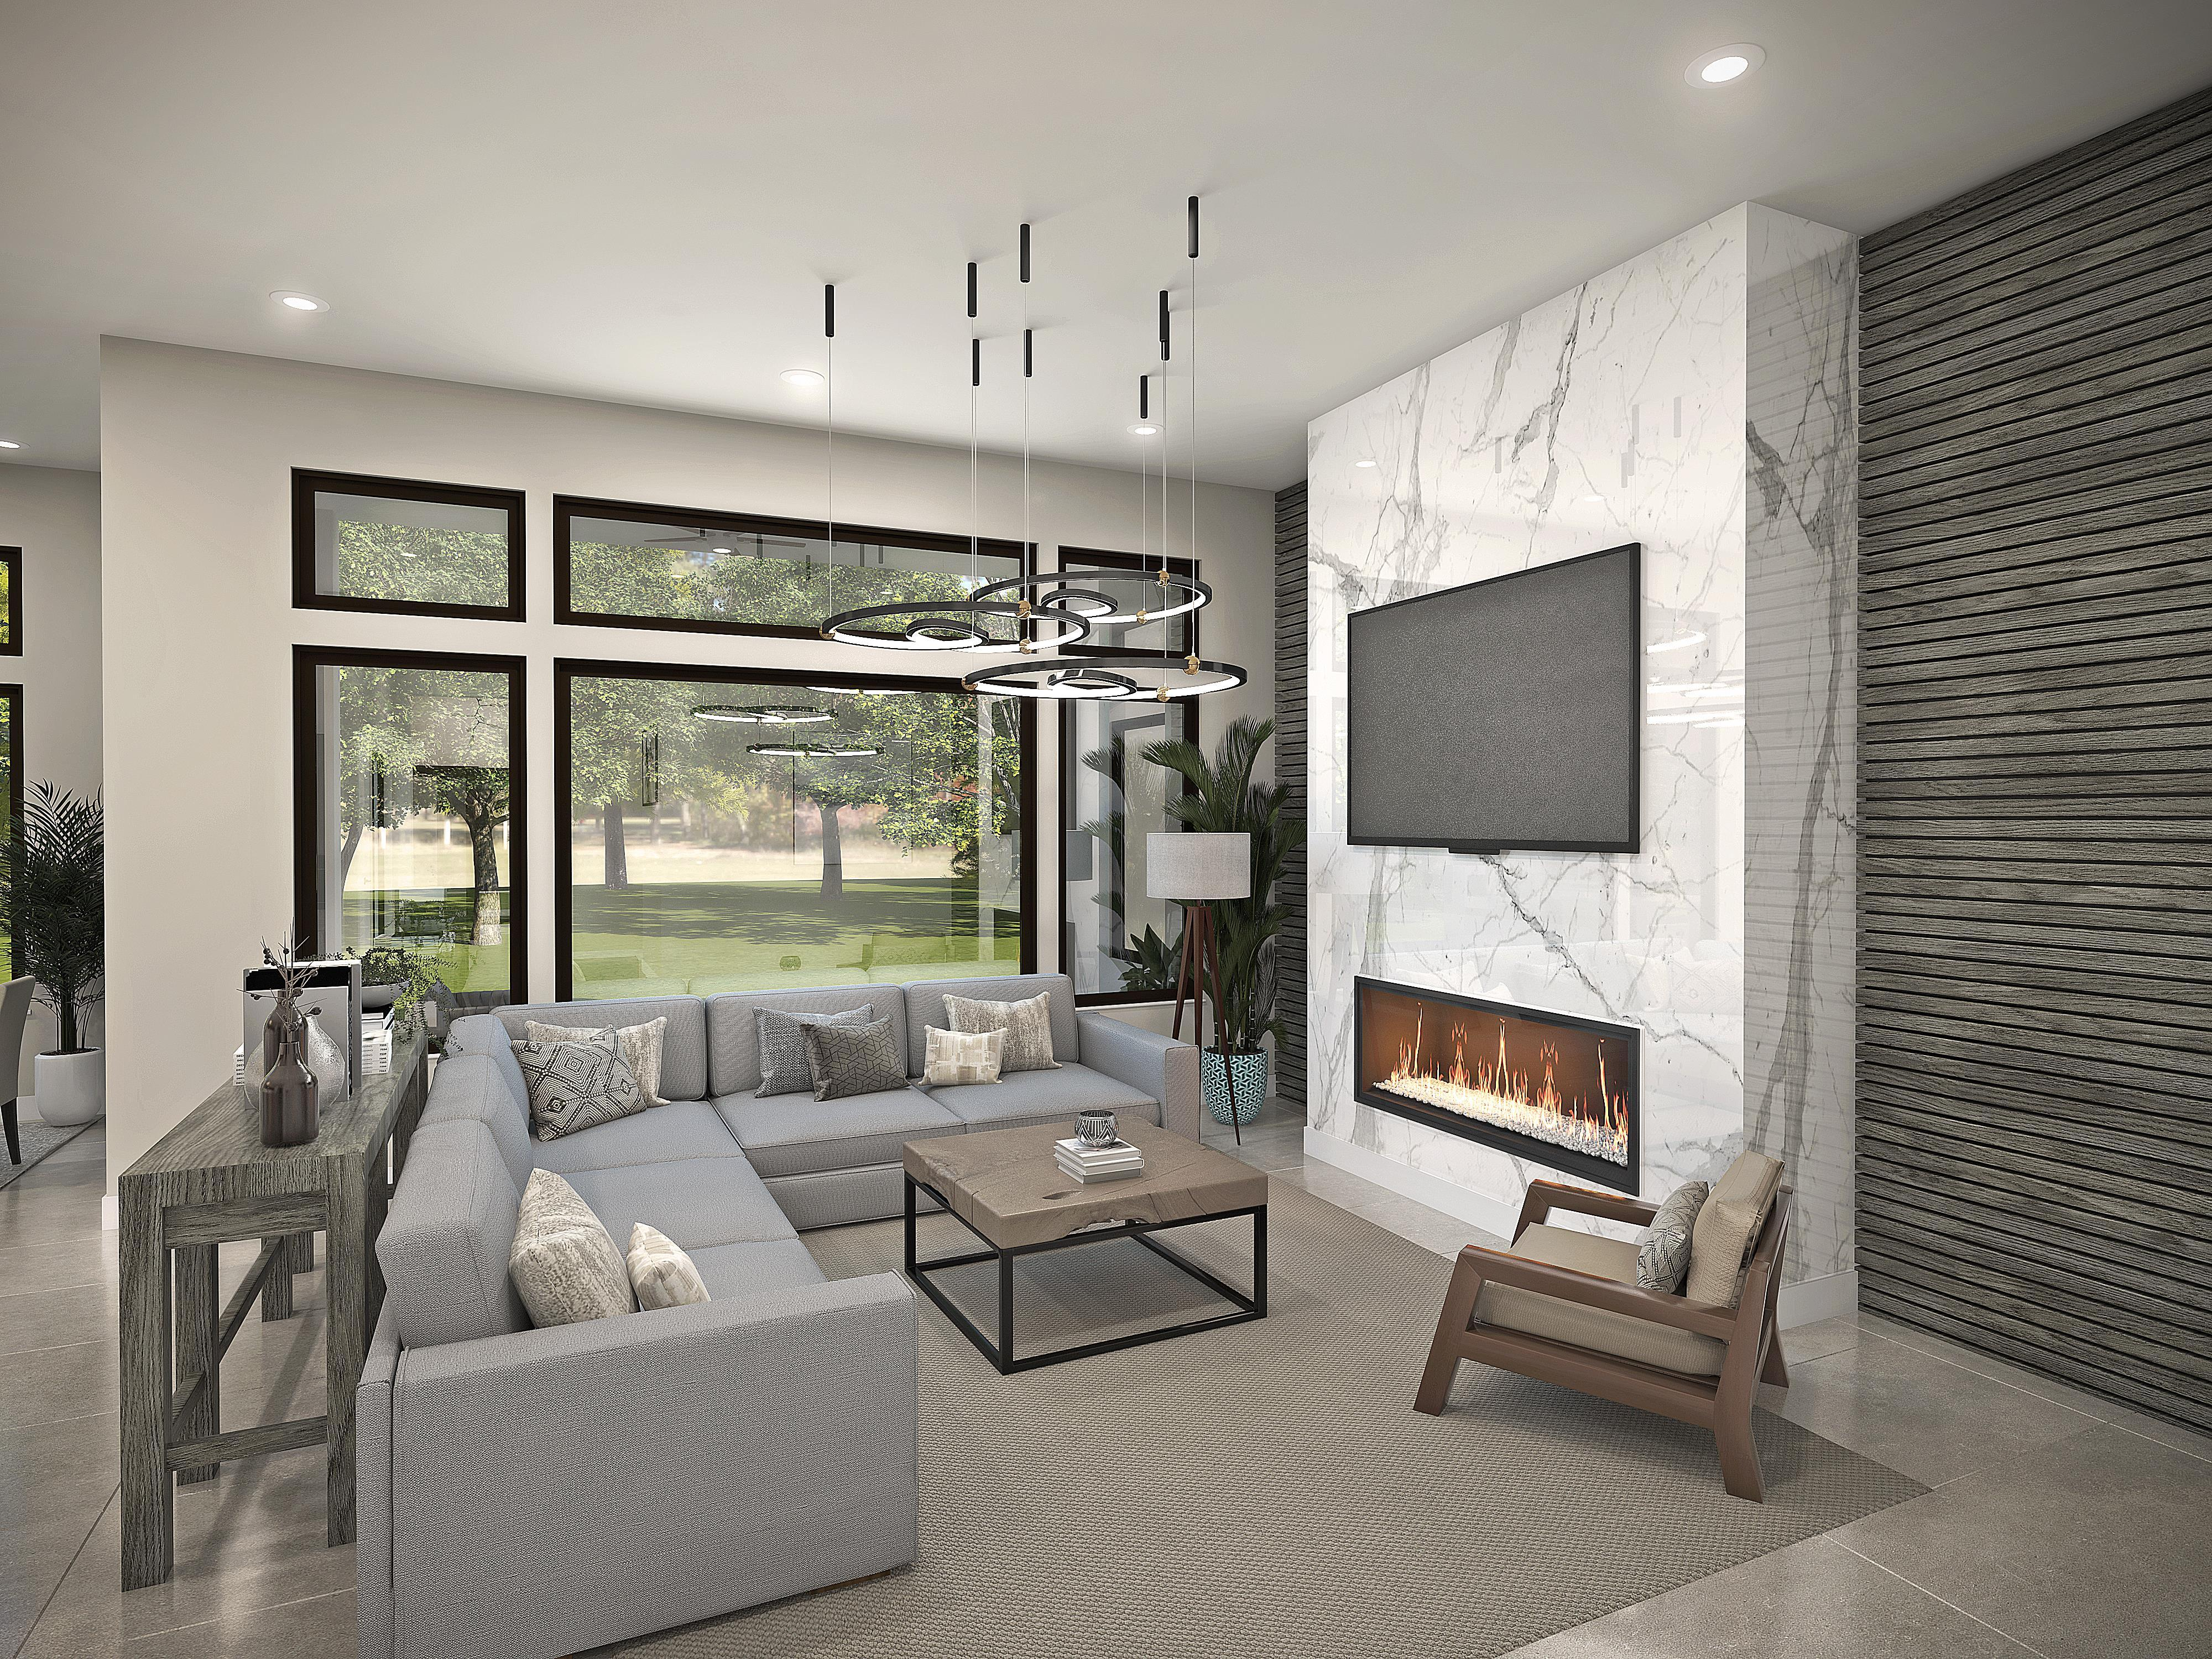 Living Area featured in the Plan 2-A By Copper Valley  in Stockton-Lodi, CA